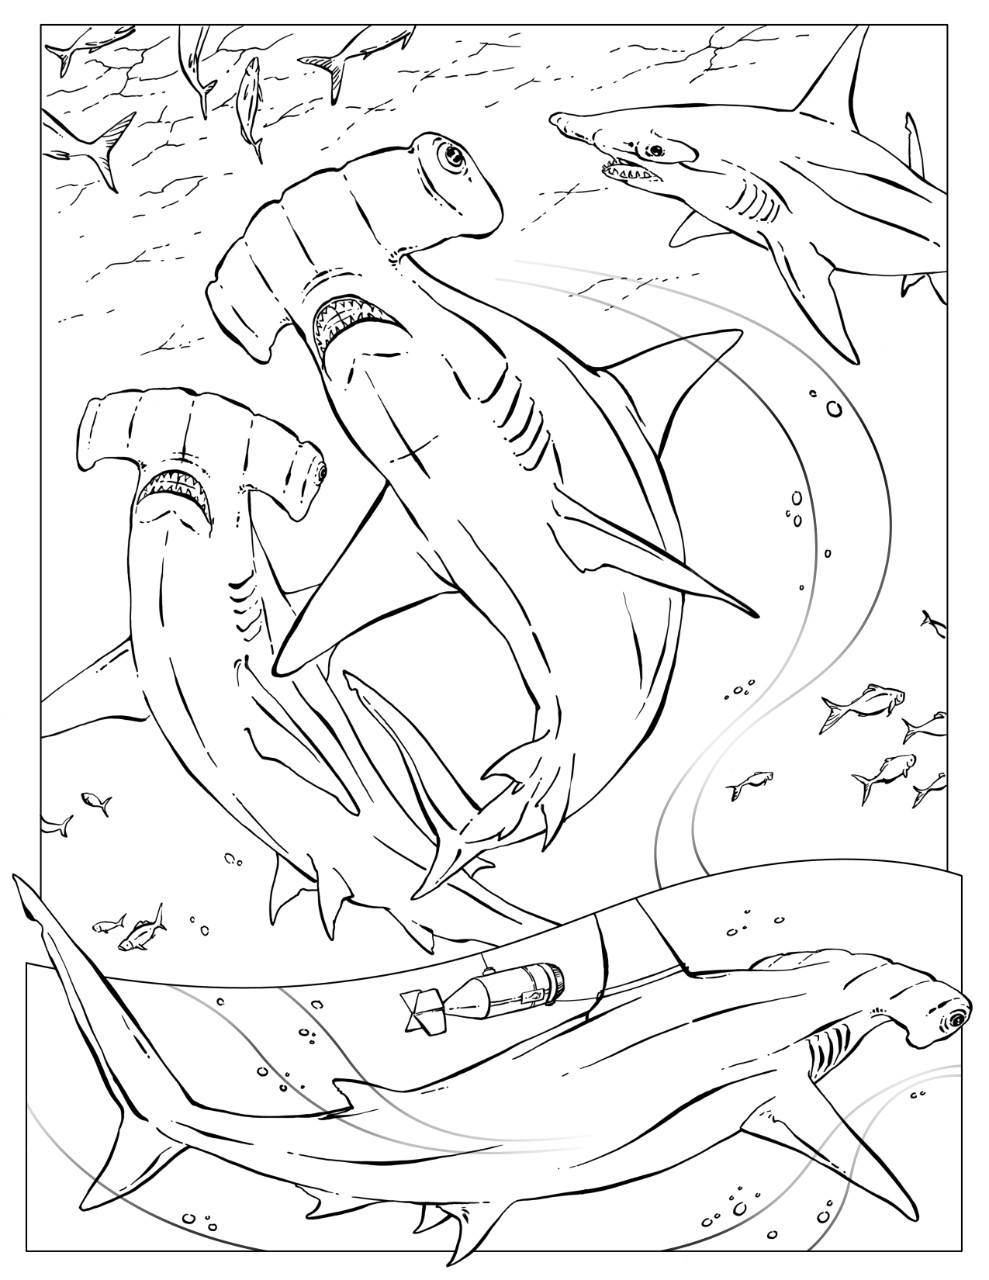 989x1280 Entertaining Shark Coloring Pages Allmadecine Weddings